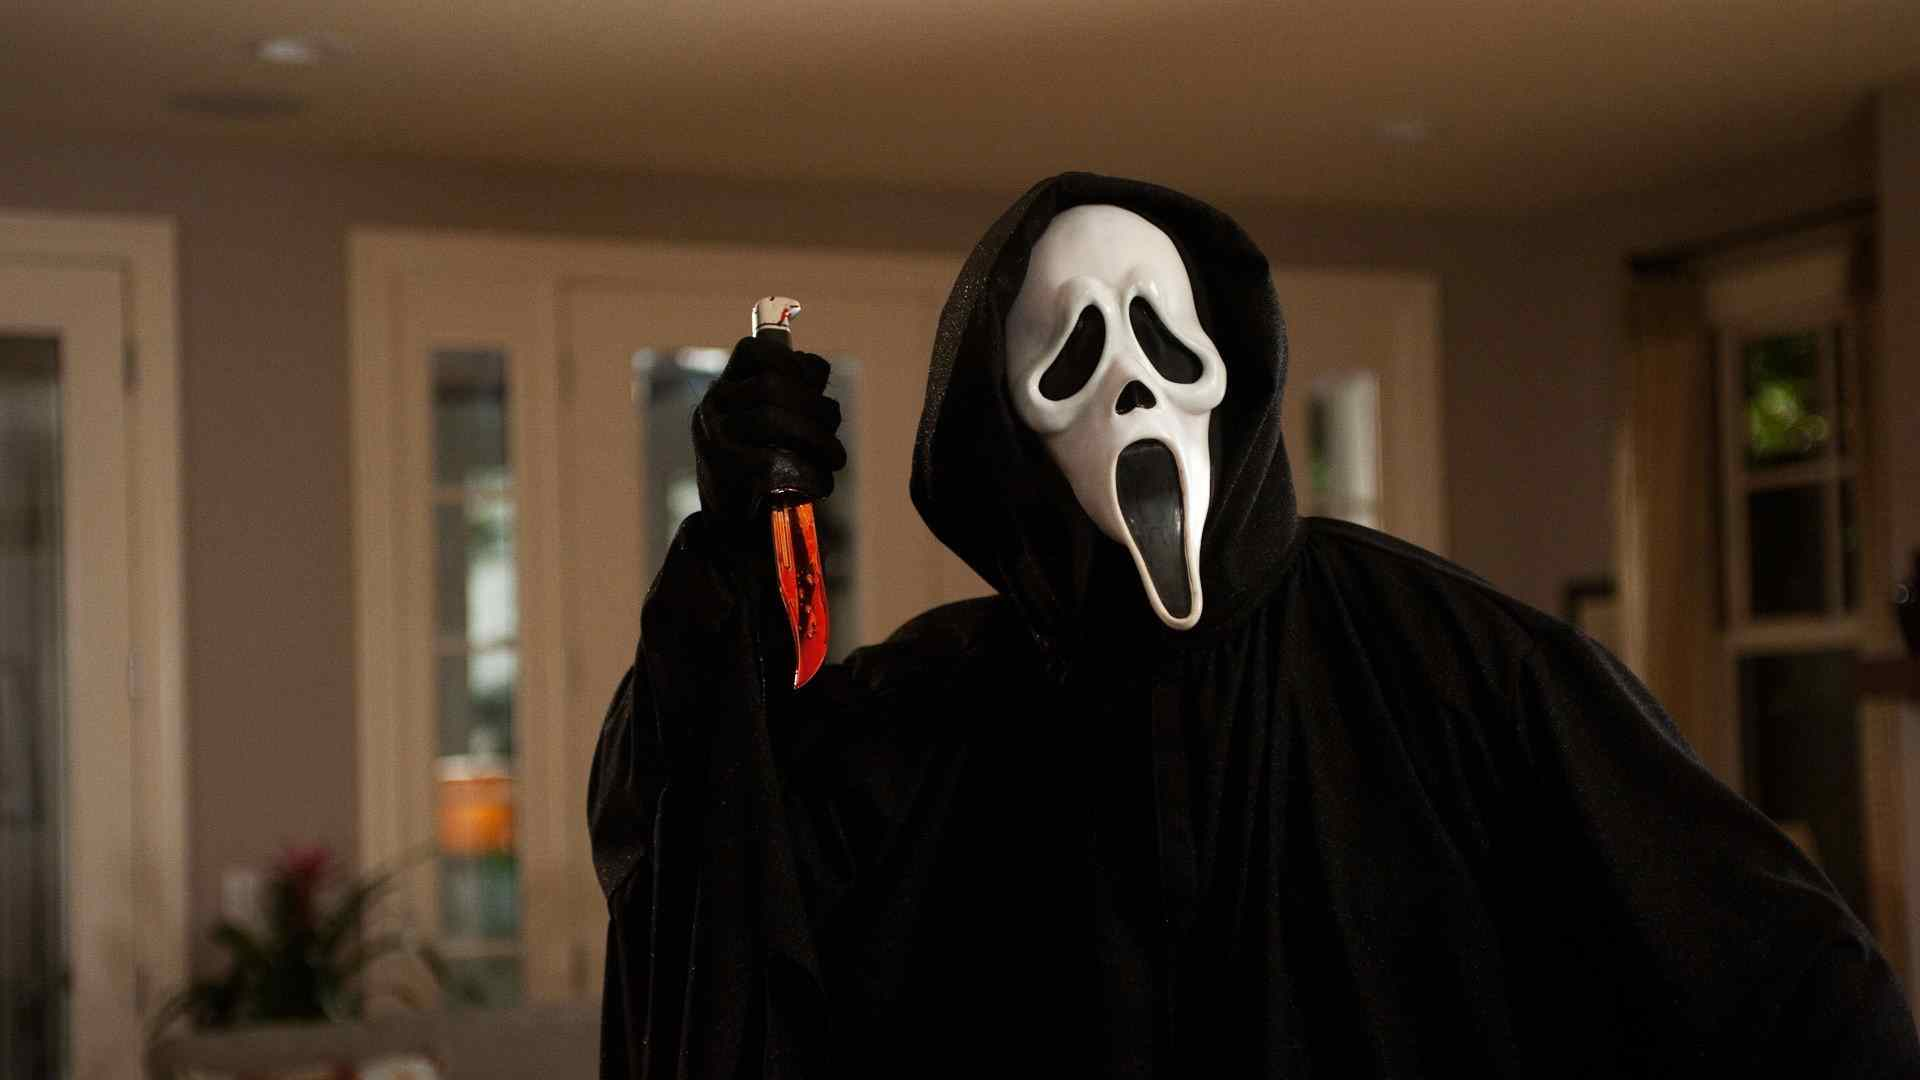 The ghostface killer in the popular scream movie franchise.